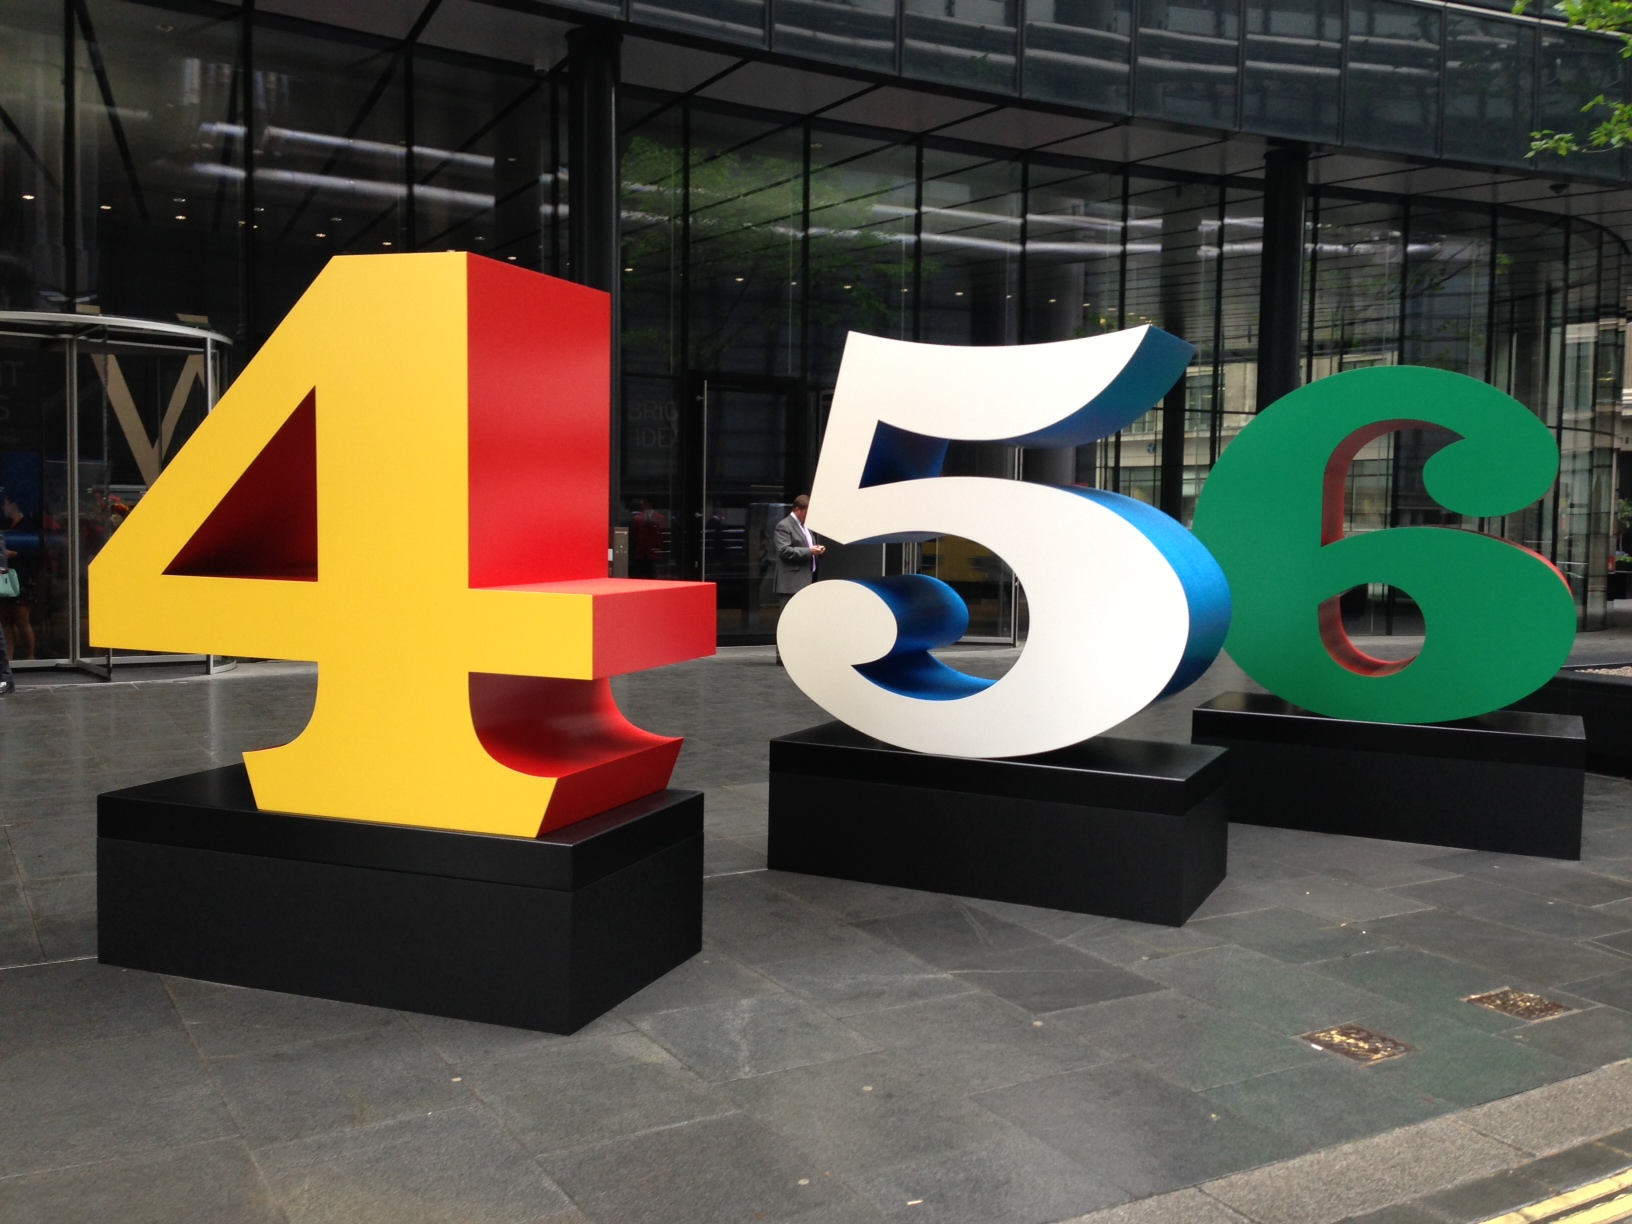 The 4, 5 and 6 from Robert Indiana's beautiful 'Numbers One Through Zero'